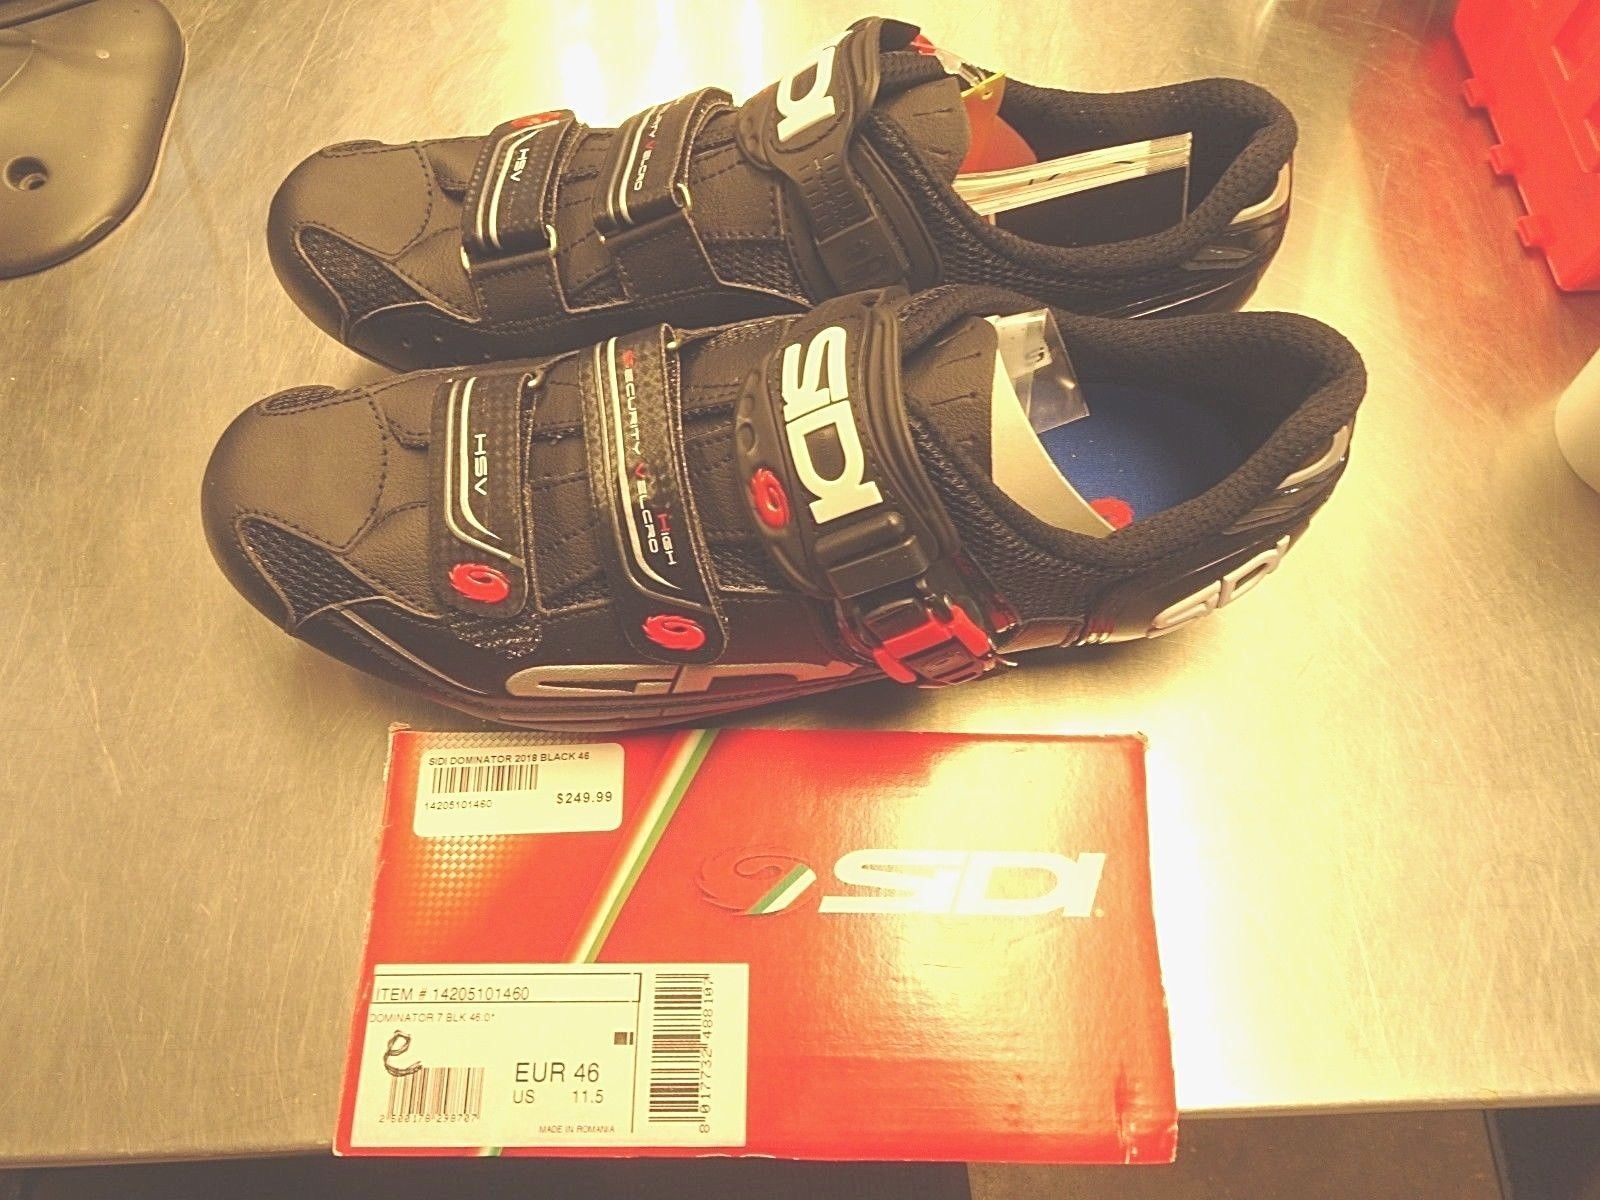 039b60e71eb Cycling Shoes and Shoe Covers 177862  Sidi Dominator 7 Mega Men S Cycling  Shoes 46 Eu 11.5 Us Black Made In Italy -  BUY IT NOW ONLY   124.99 on   eBay ...